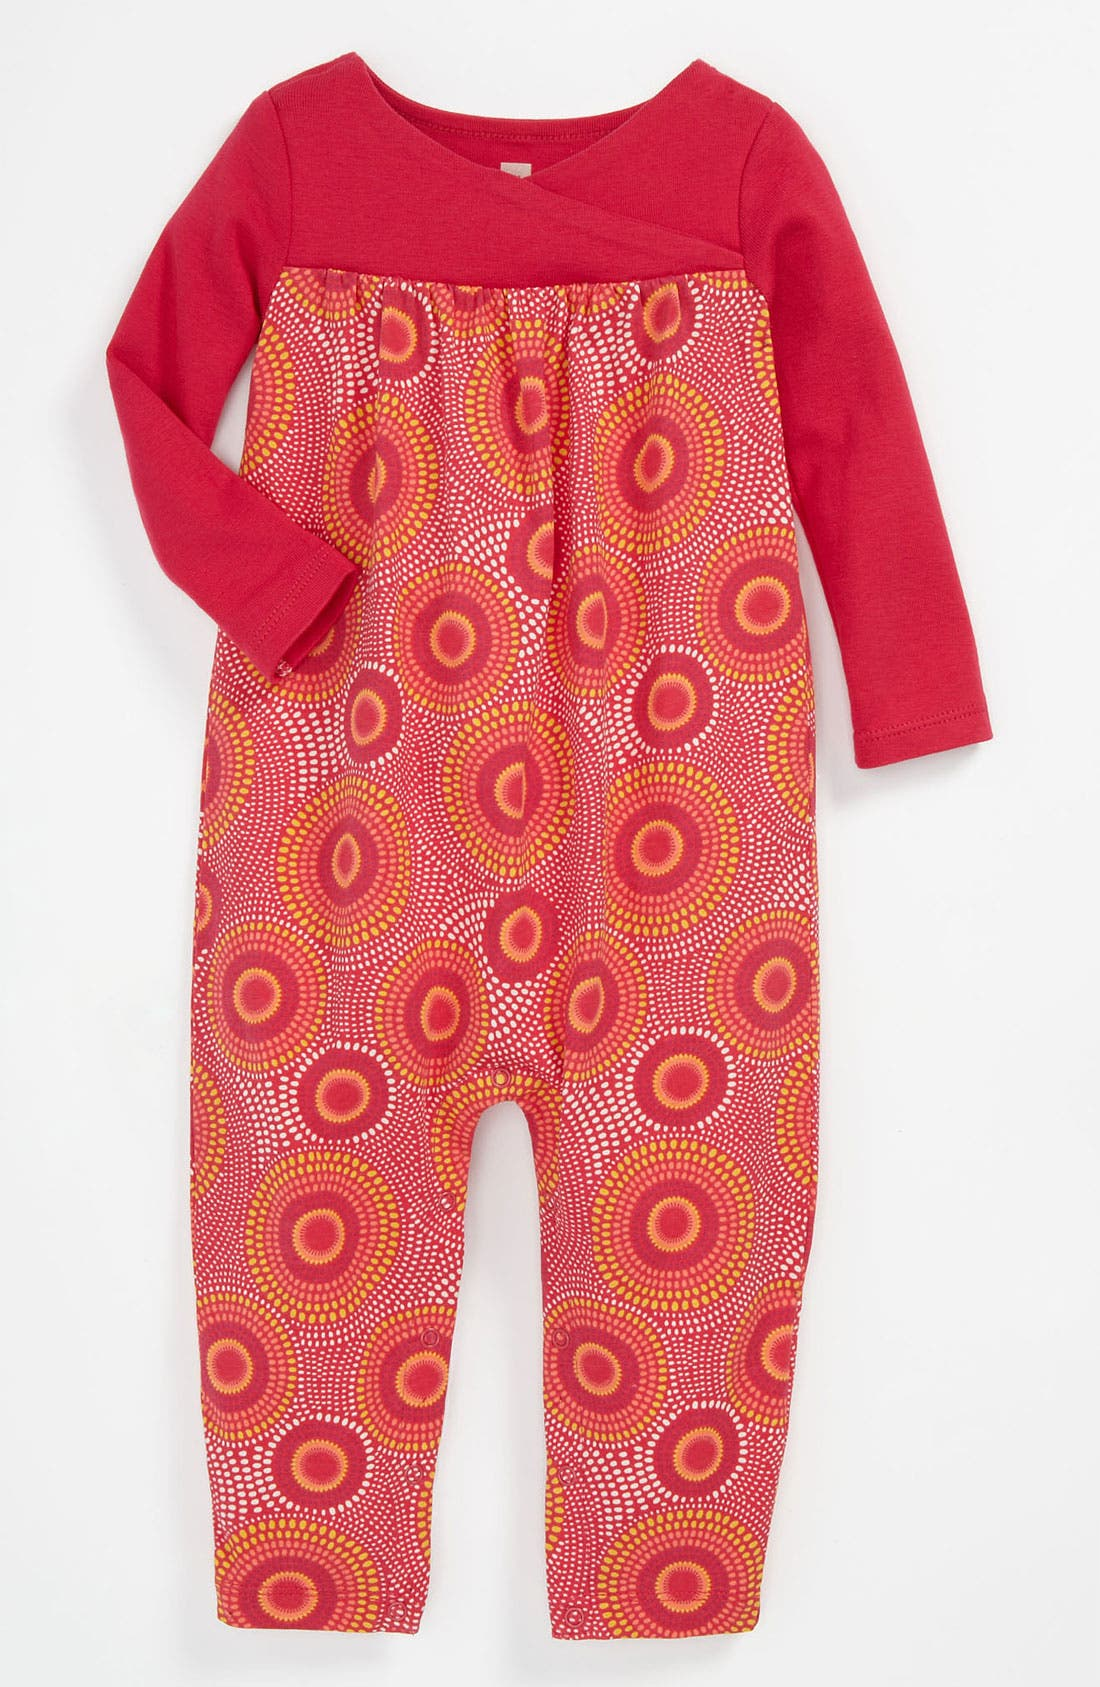 Main Image - Tea Collection 'Elim' Coveralls (Baby)